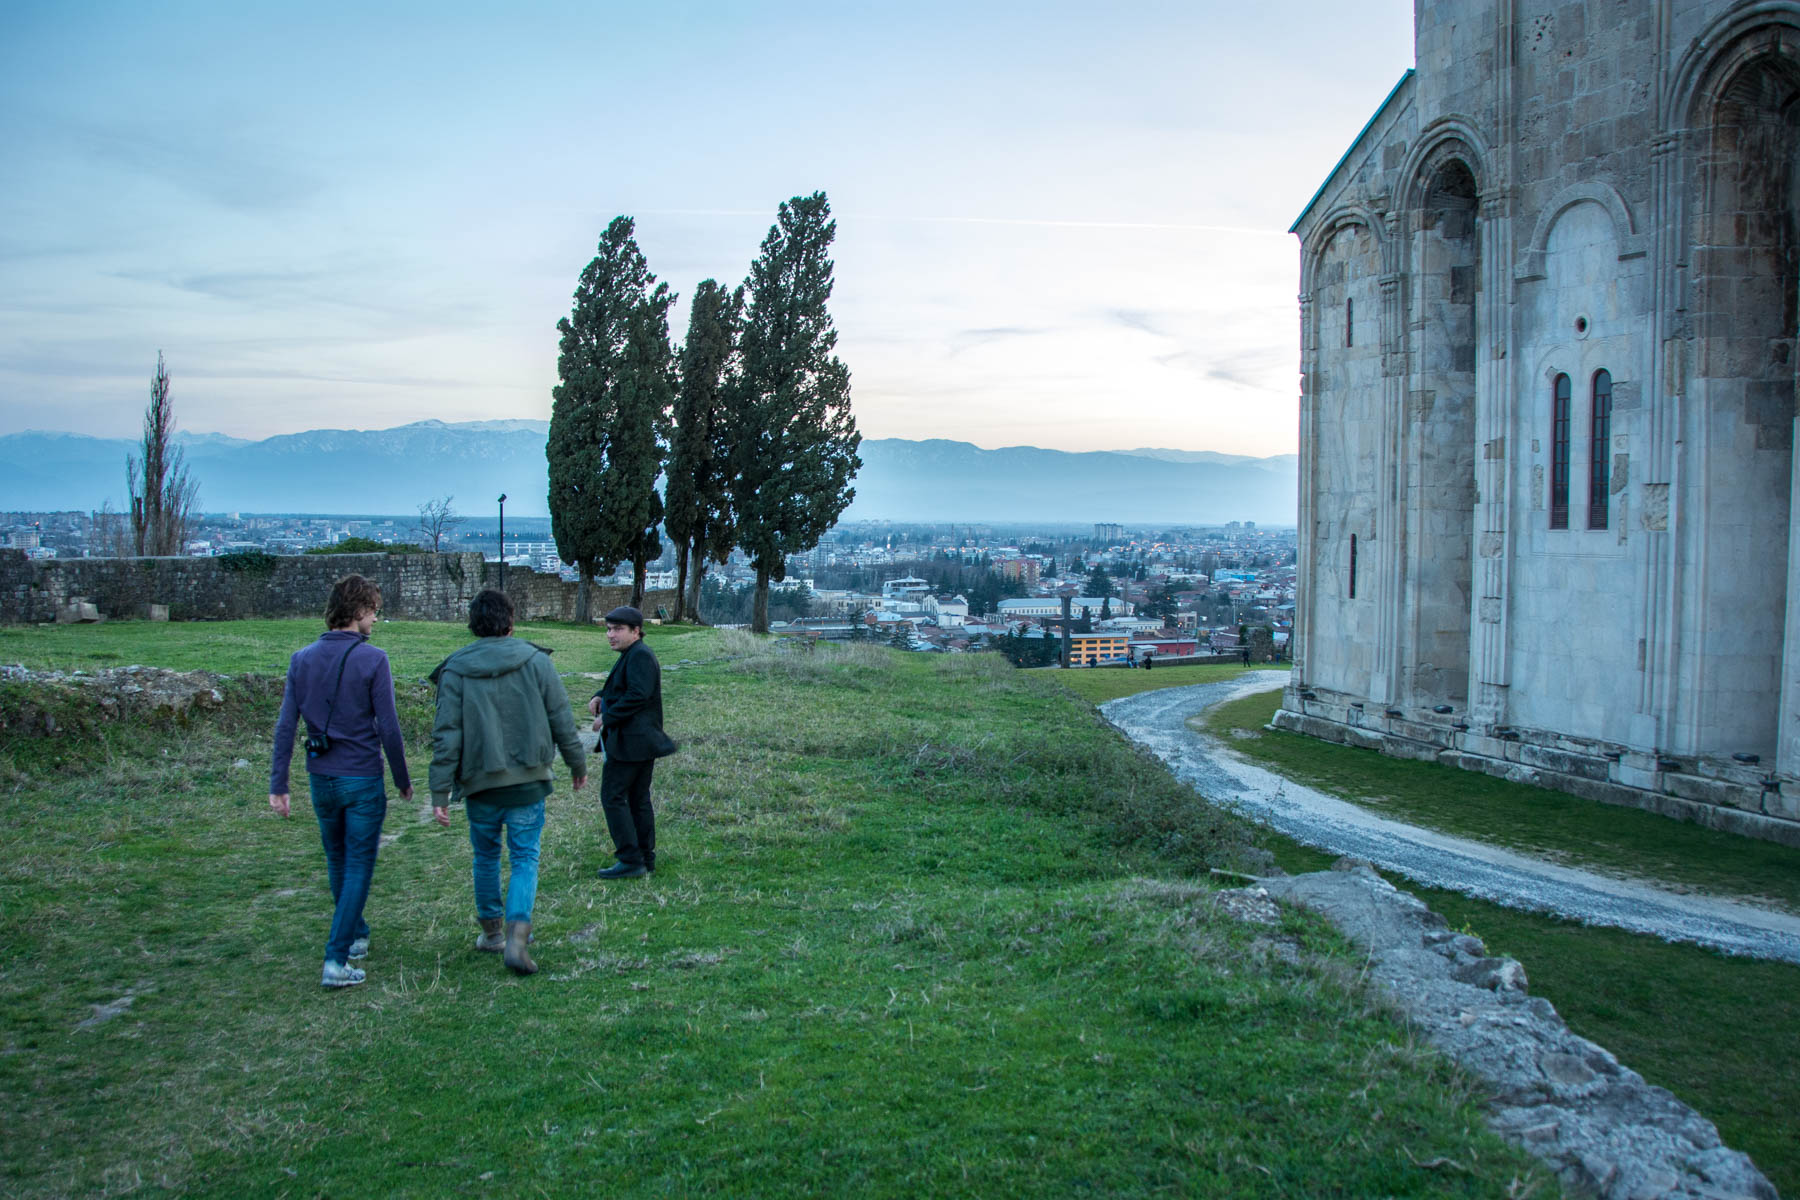 Tour outside of Bagrati cathedral in Kutaisi